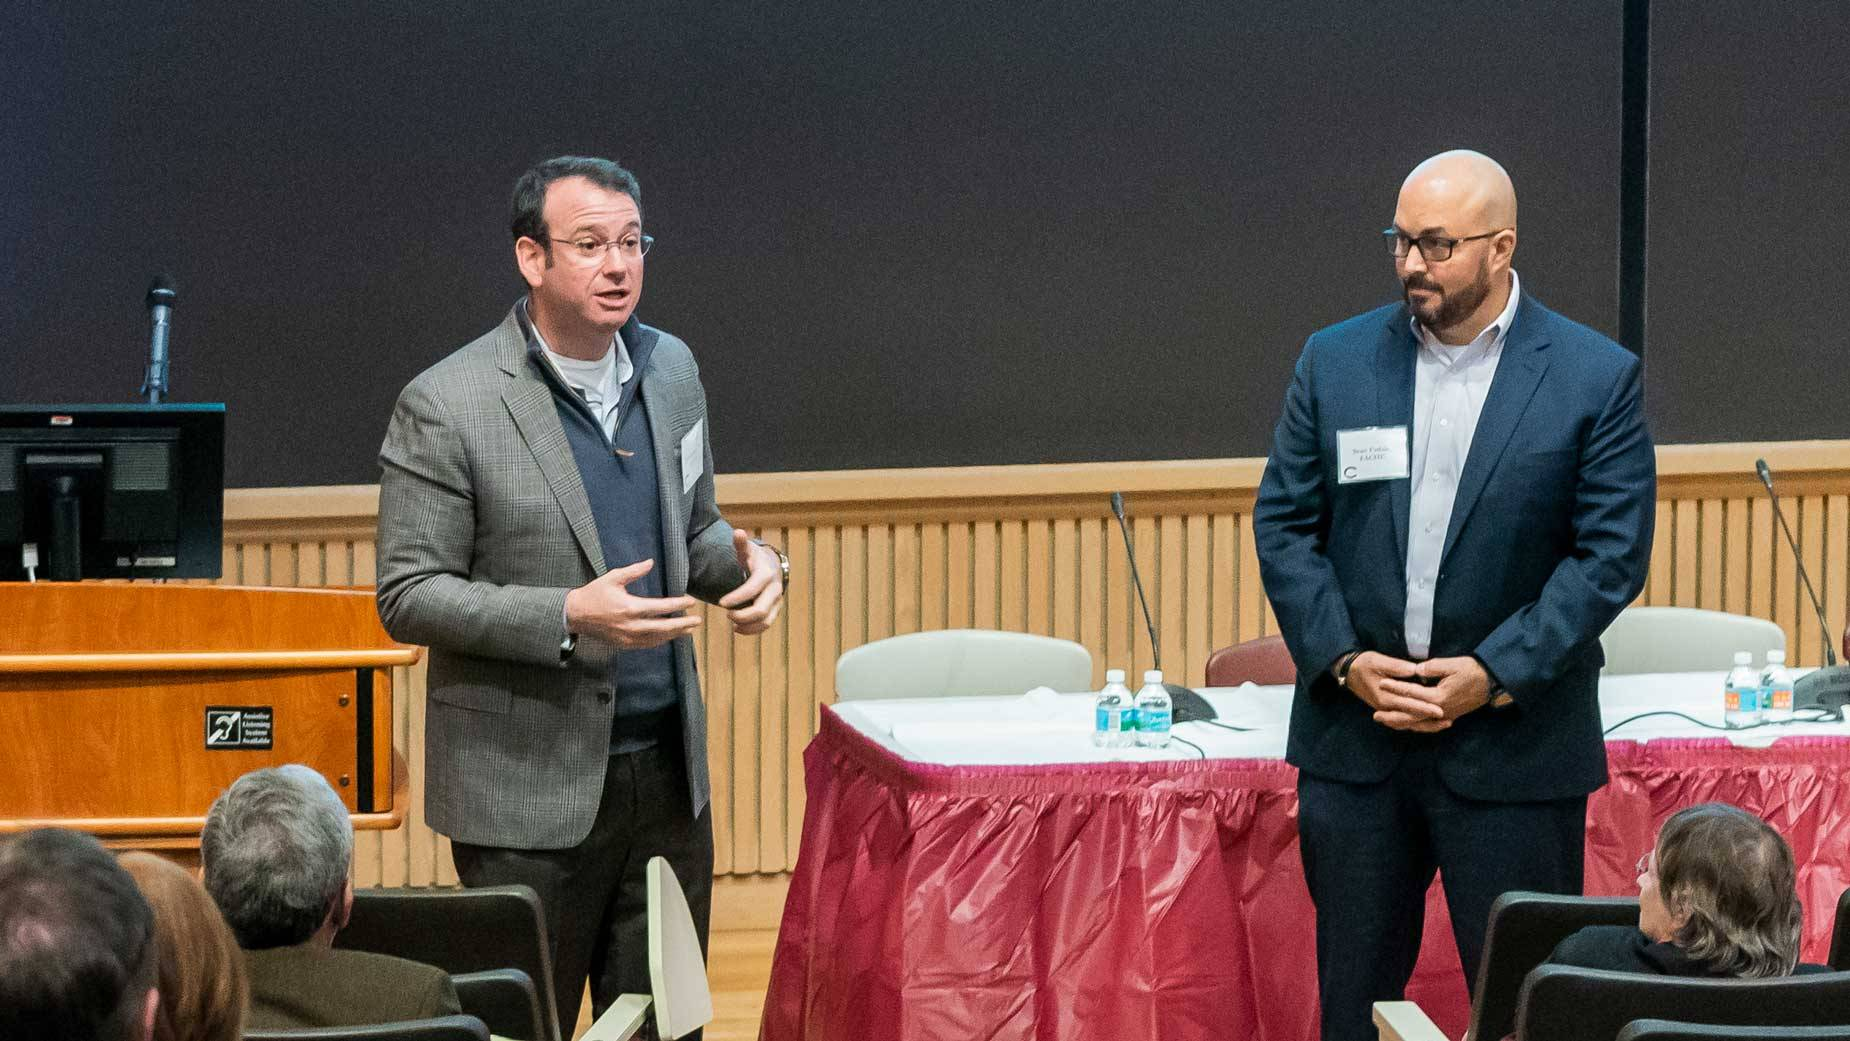 Jon Sendach '98 and Sean Fadale address members of the Colgate community. (Photo by Mark DiOrio)